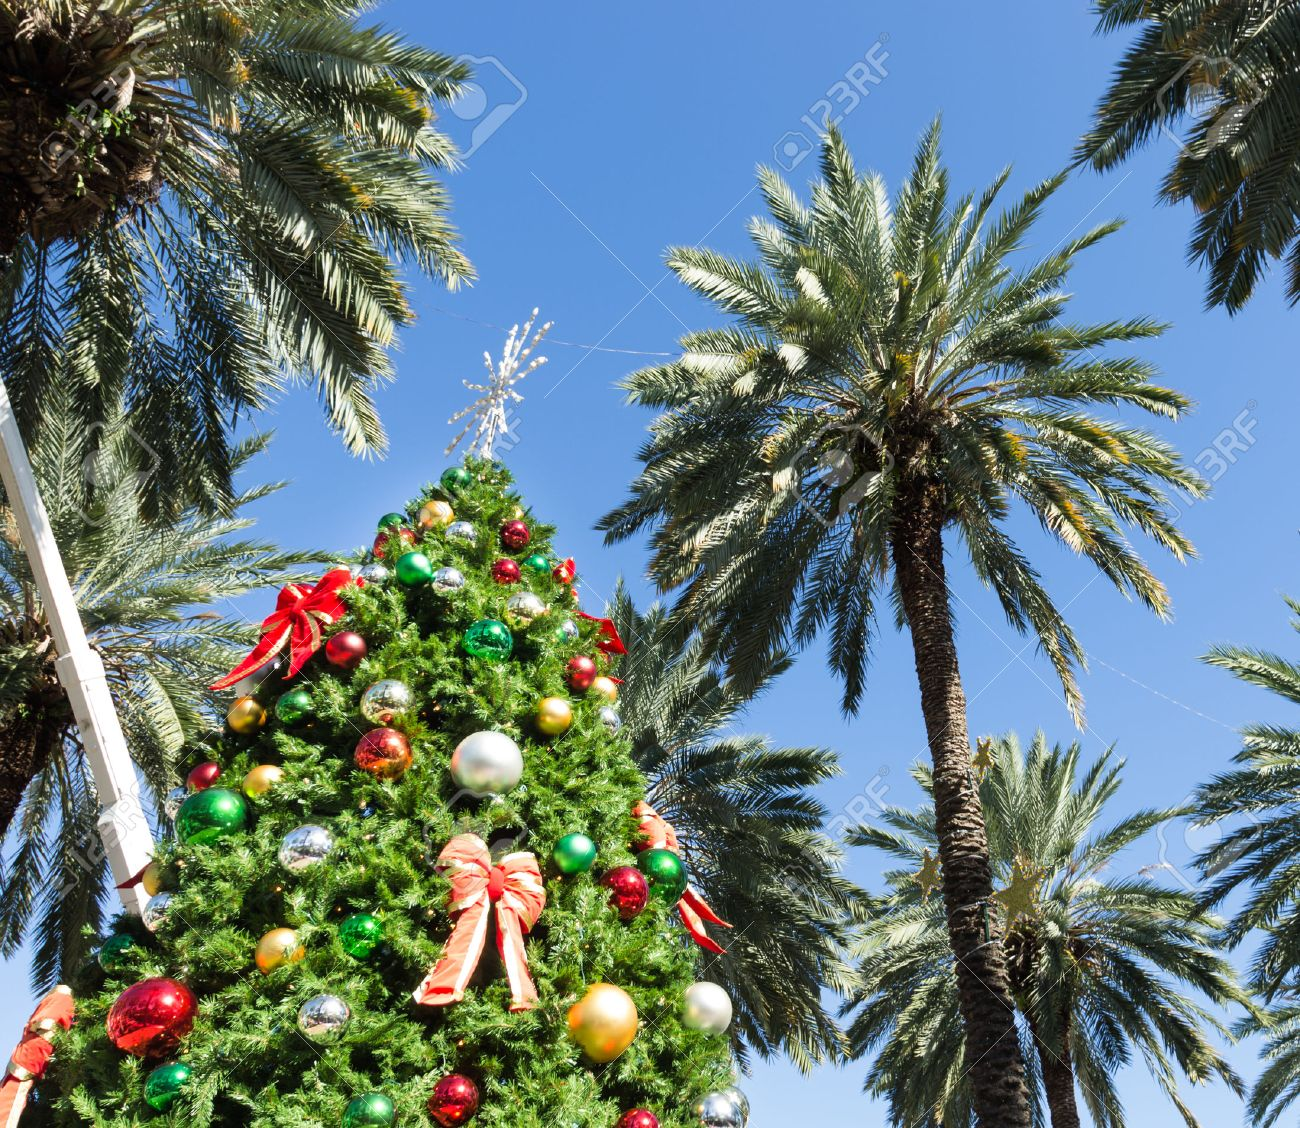 Christmas Tree In Miami Stock Photo, Picture And Royalty Free ...